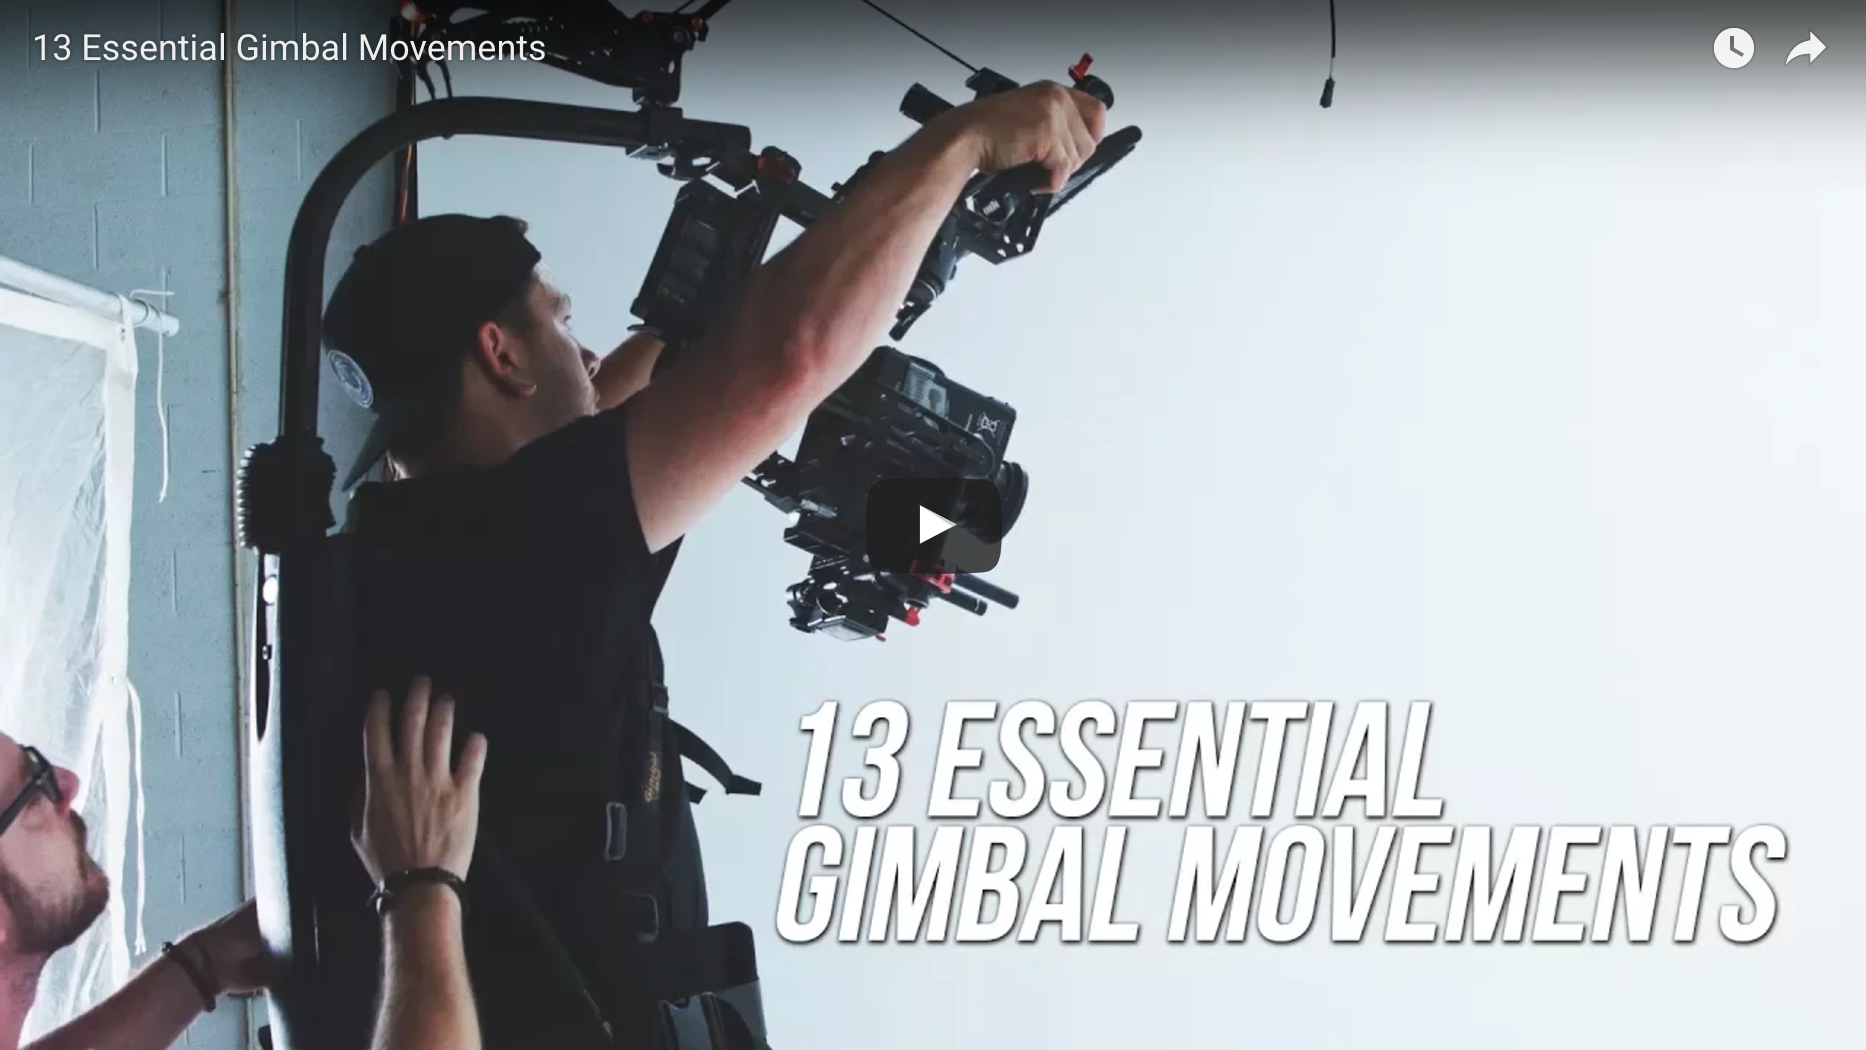 13 Essential Gimbal Movements You Should Know